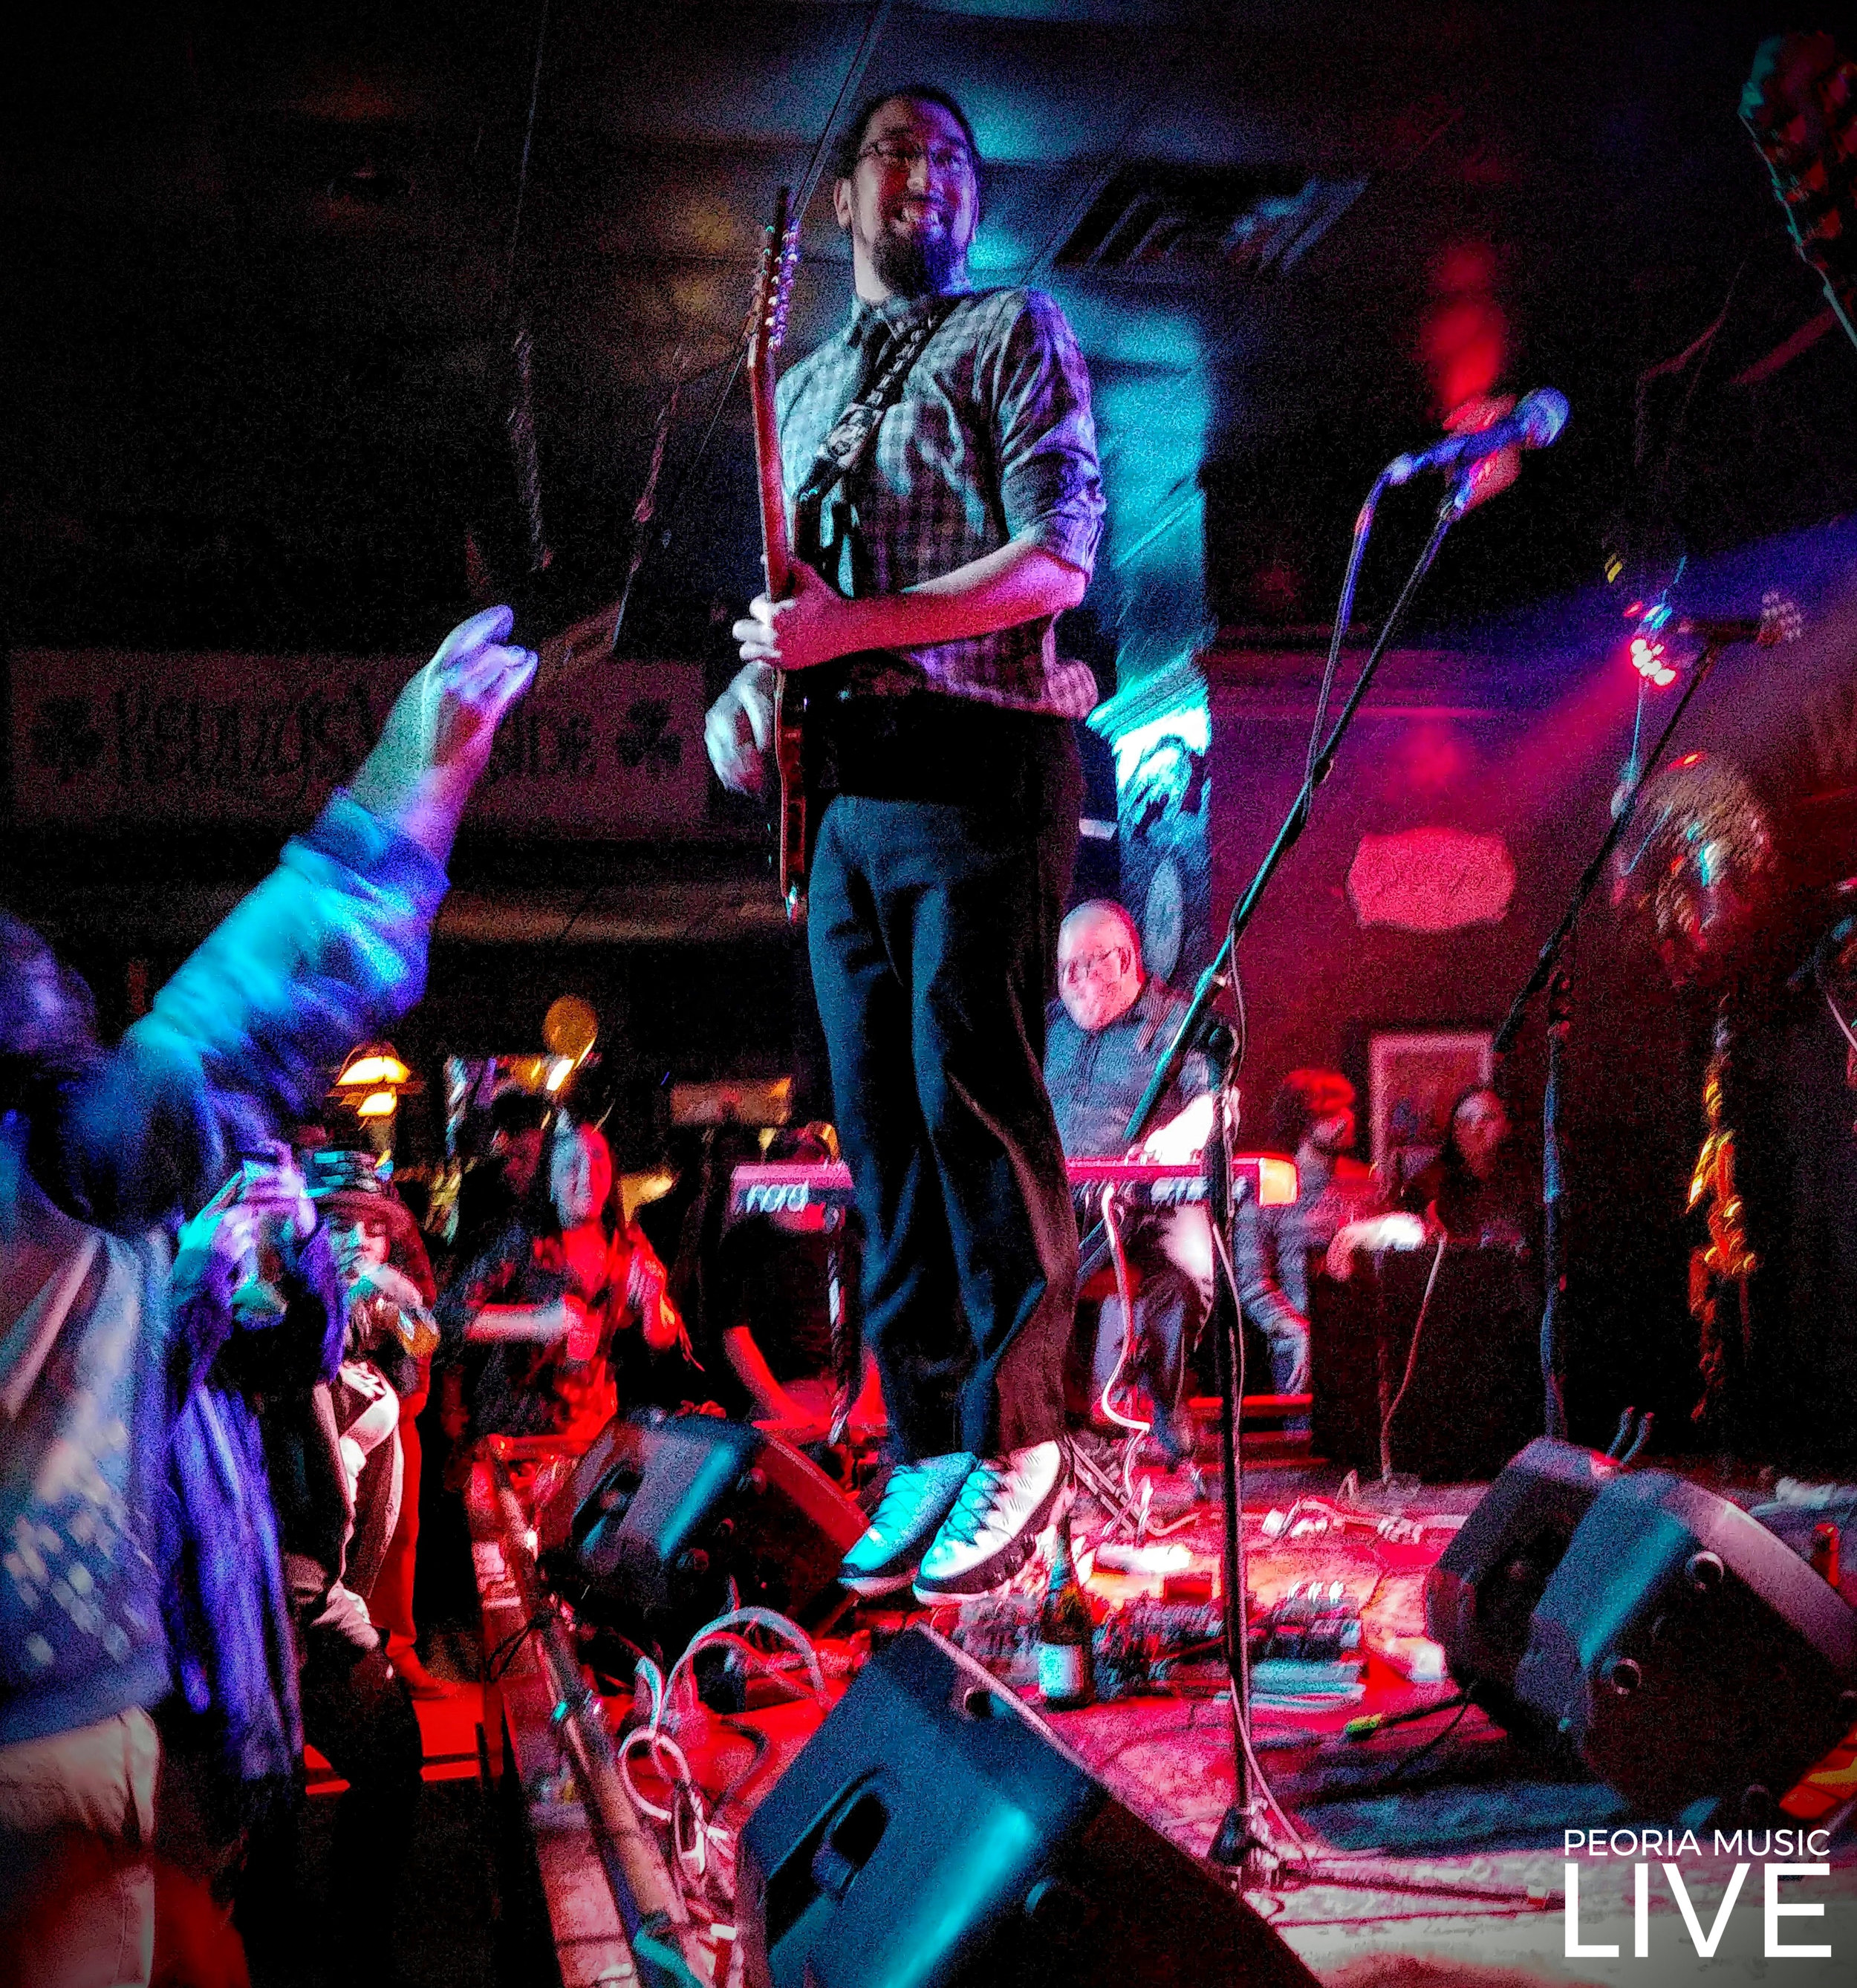 Roy Ponce of Brainchild. What most people see is the fact that he is flying, but someone pointed out how big his smile is and that's what I see when I look at this now. That's the smile of someone doing what they were born to do. At Kenny's Westside Pub 01/01/2019